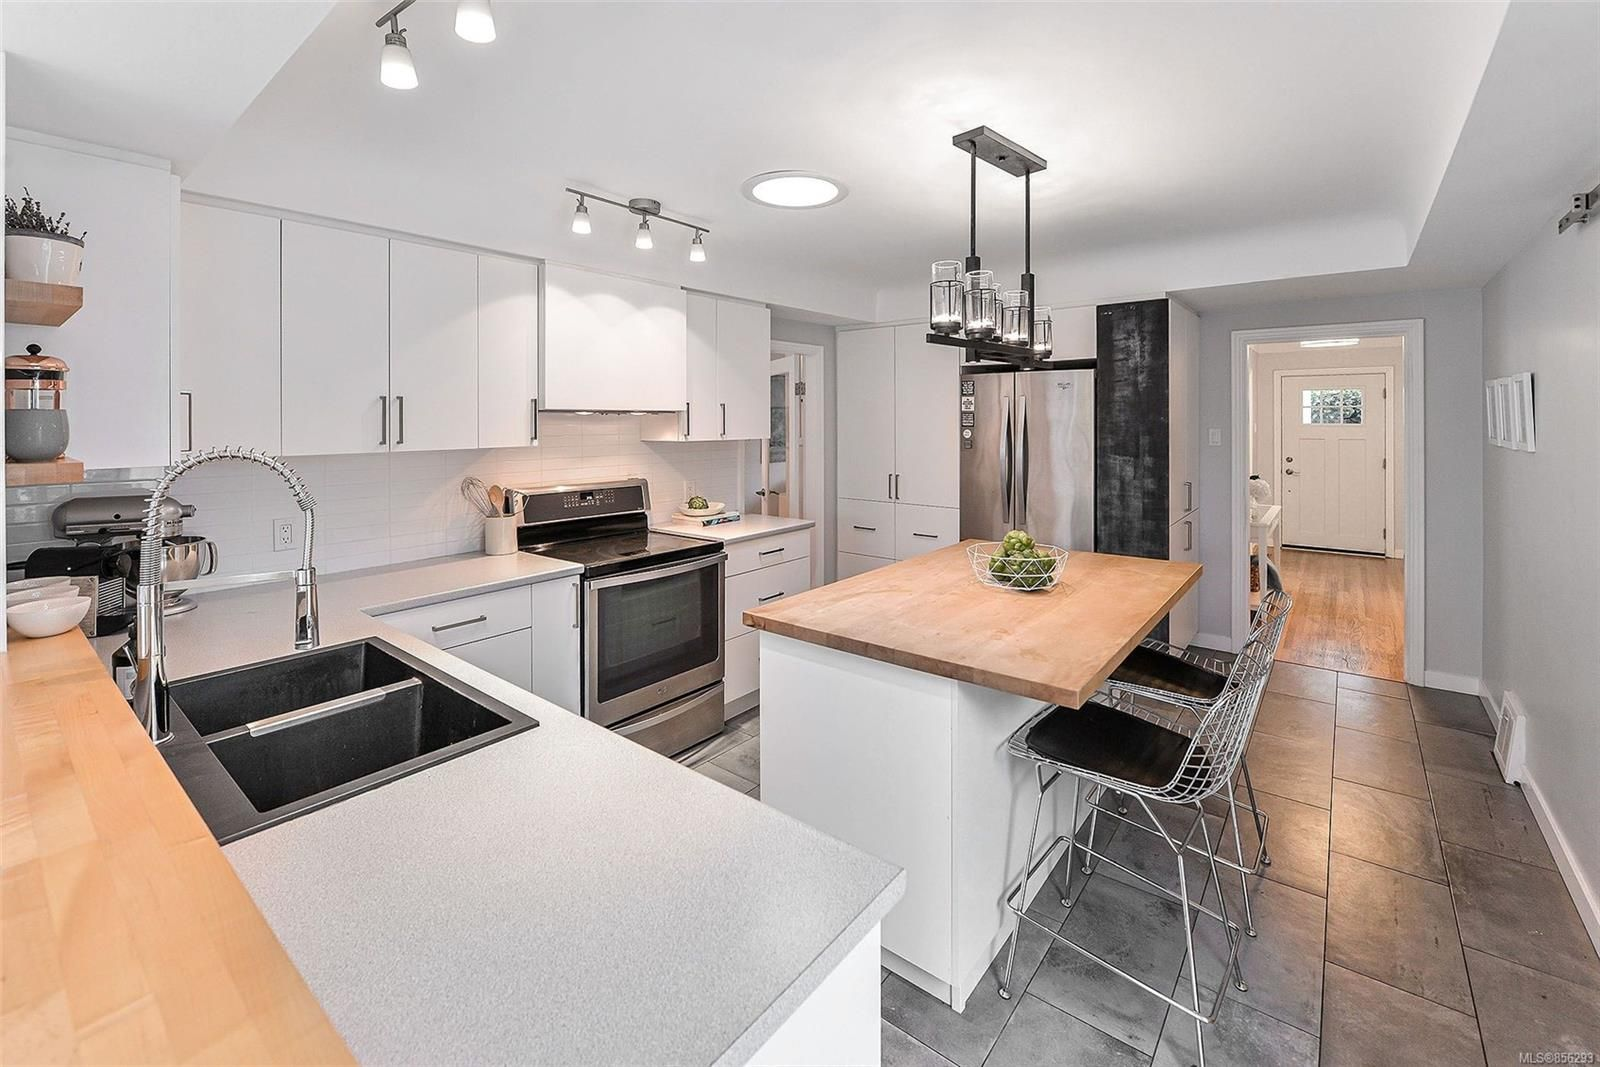 Photo 9: Photos: 1753 Armstrong Ave in : OB North Oak Bay House for sale (Oak Bay)  : MLS®# 856293